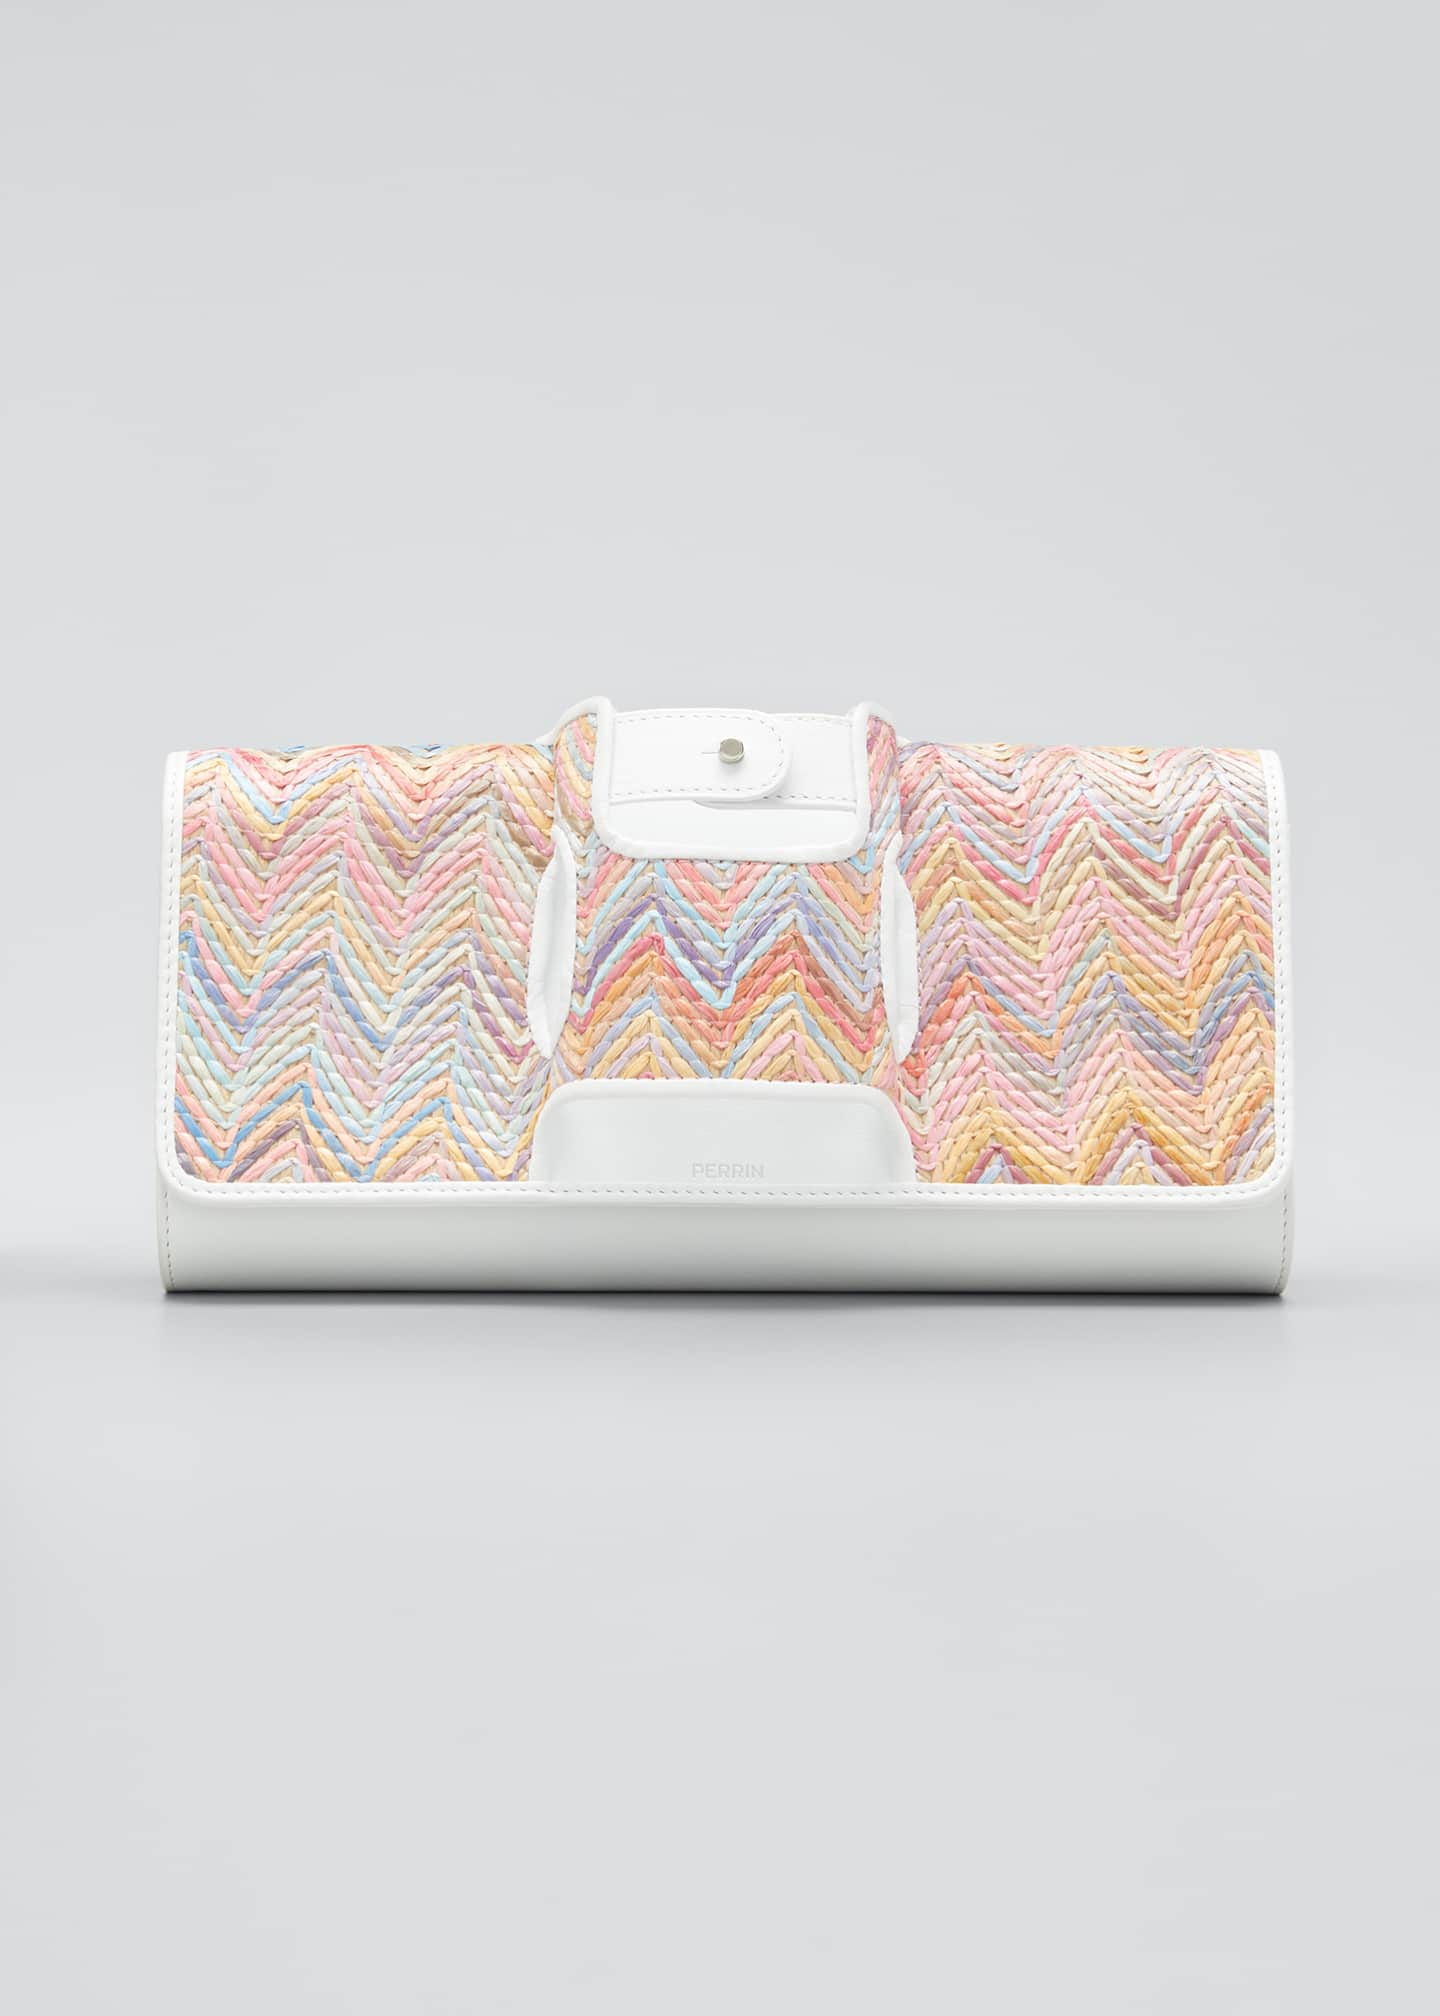 Image 1 of 5: La Newyorkaise Raffia Clutch Bag